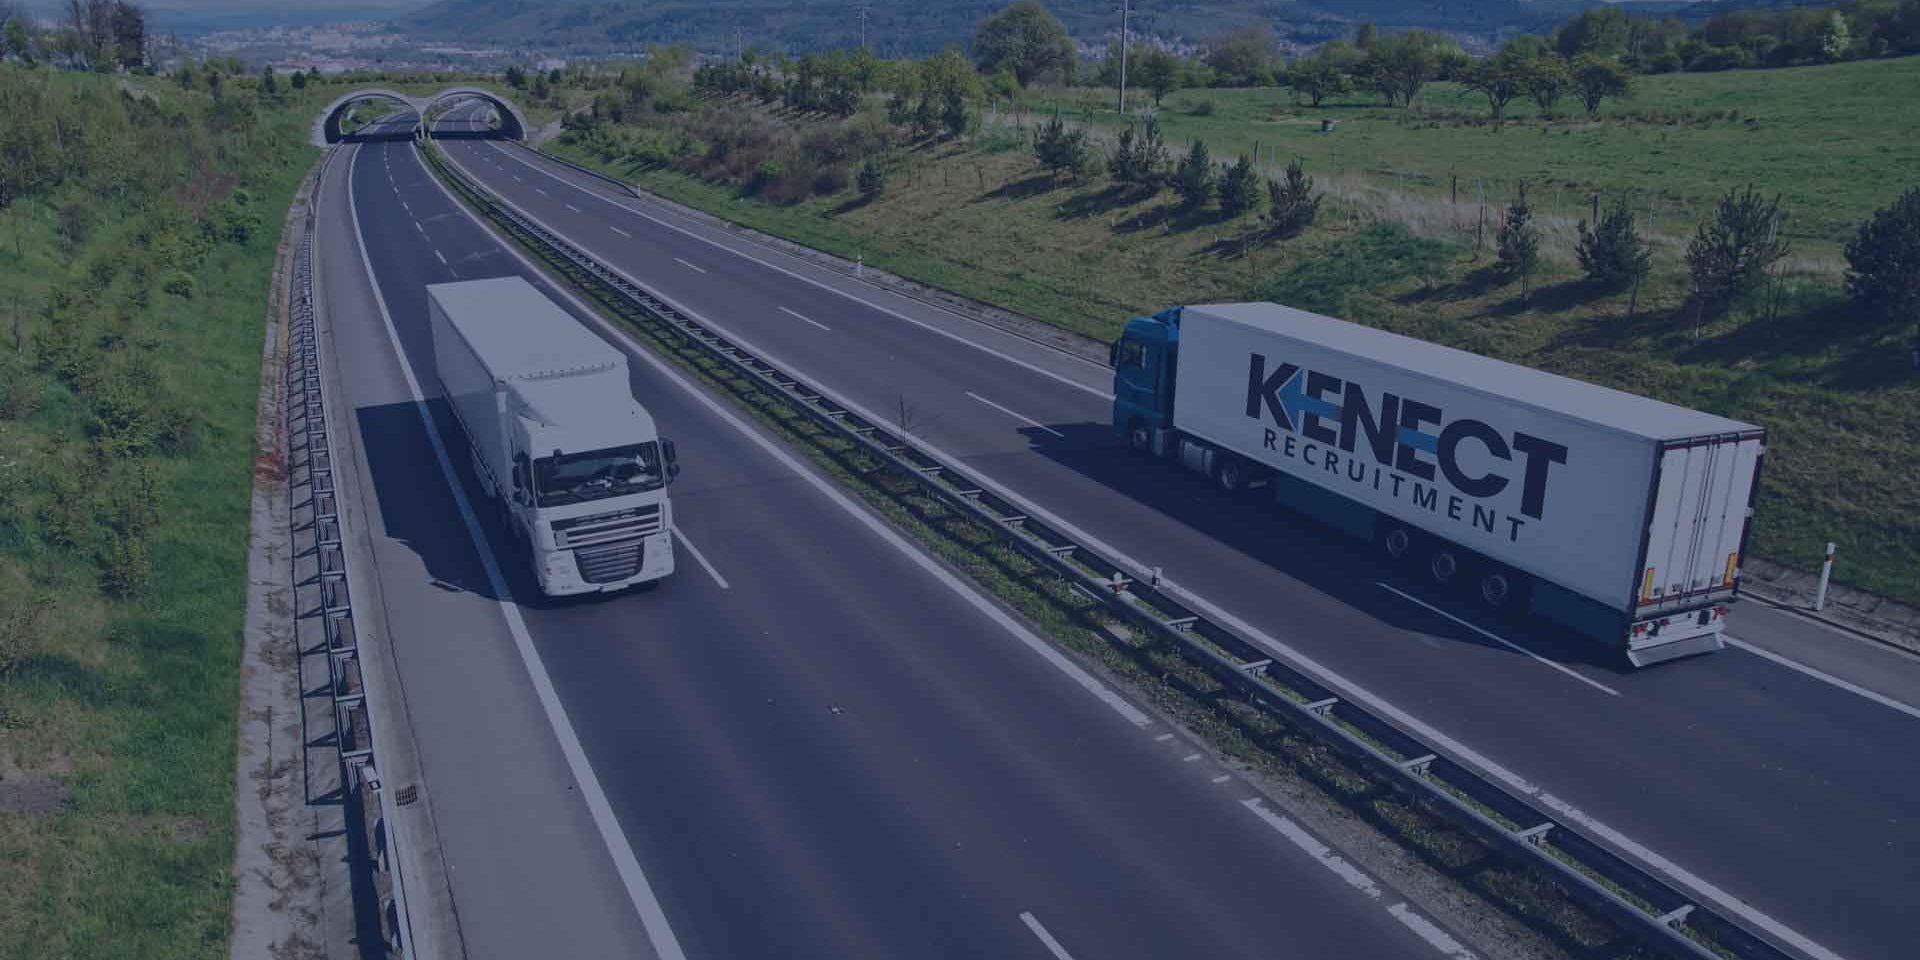 Kenect-Lorry-Passing-overlay